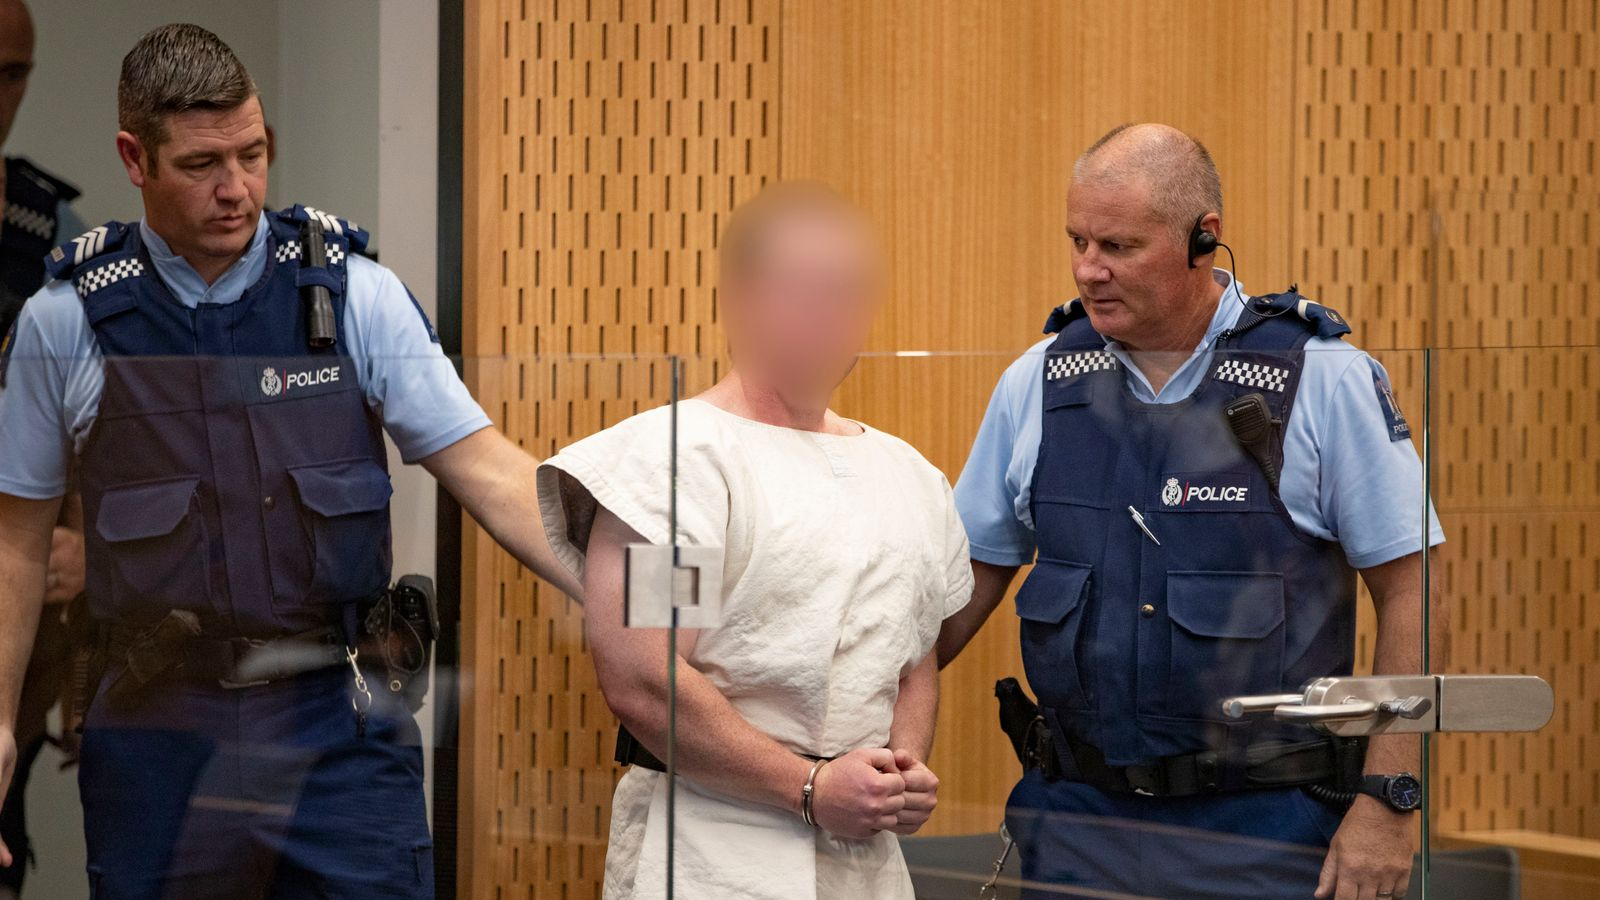 Brenton Tarrant Facebook Update: New Zealand Mosque Shootings: Suspect's Manifesto Sent To